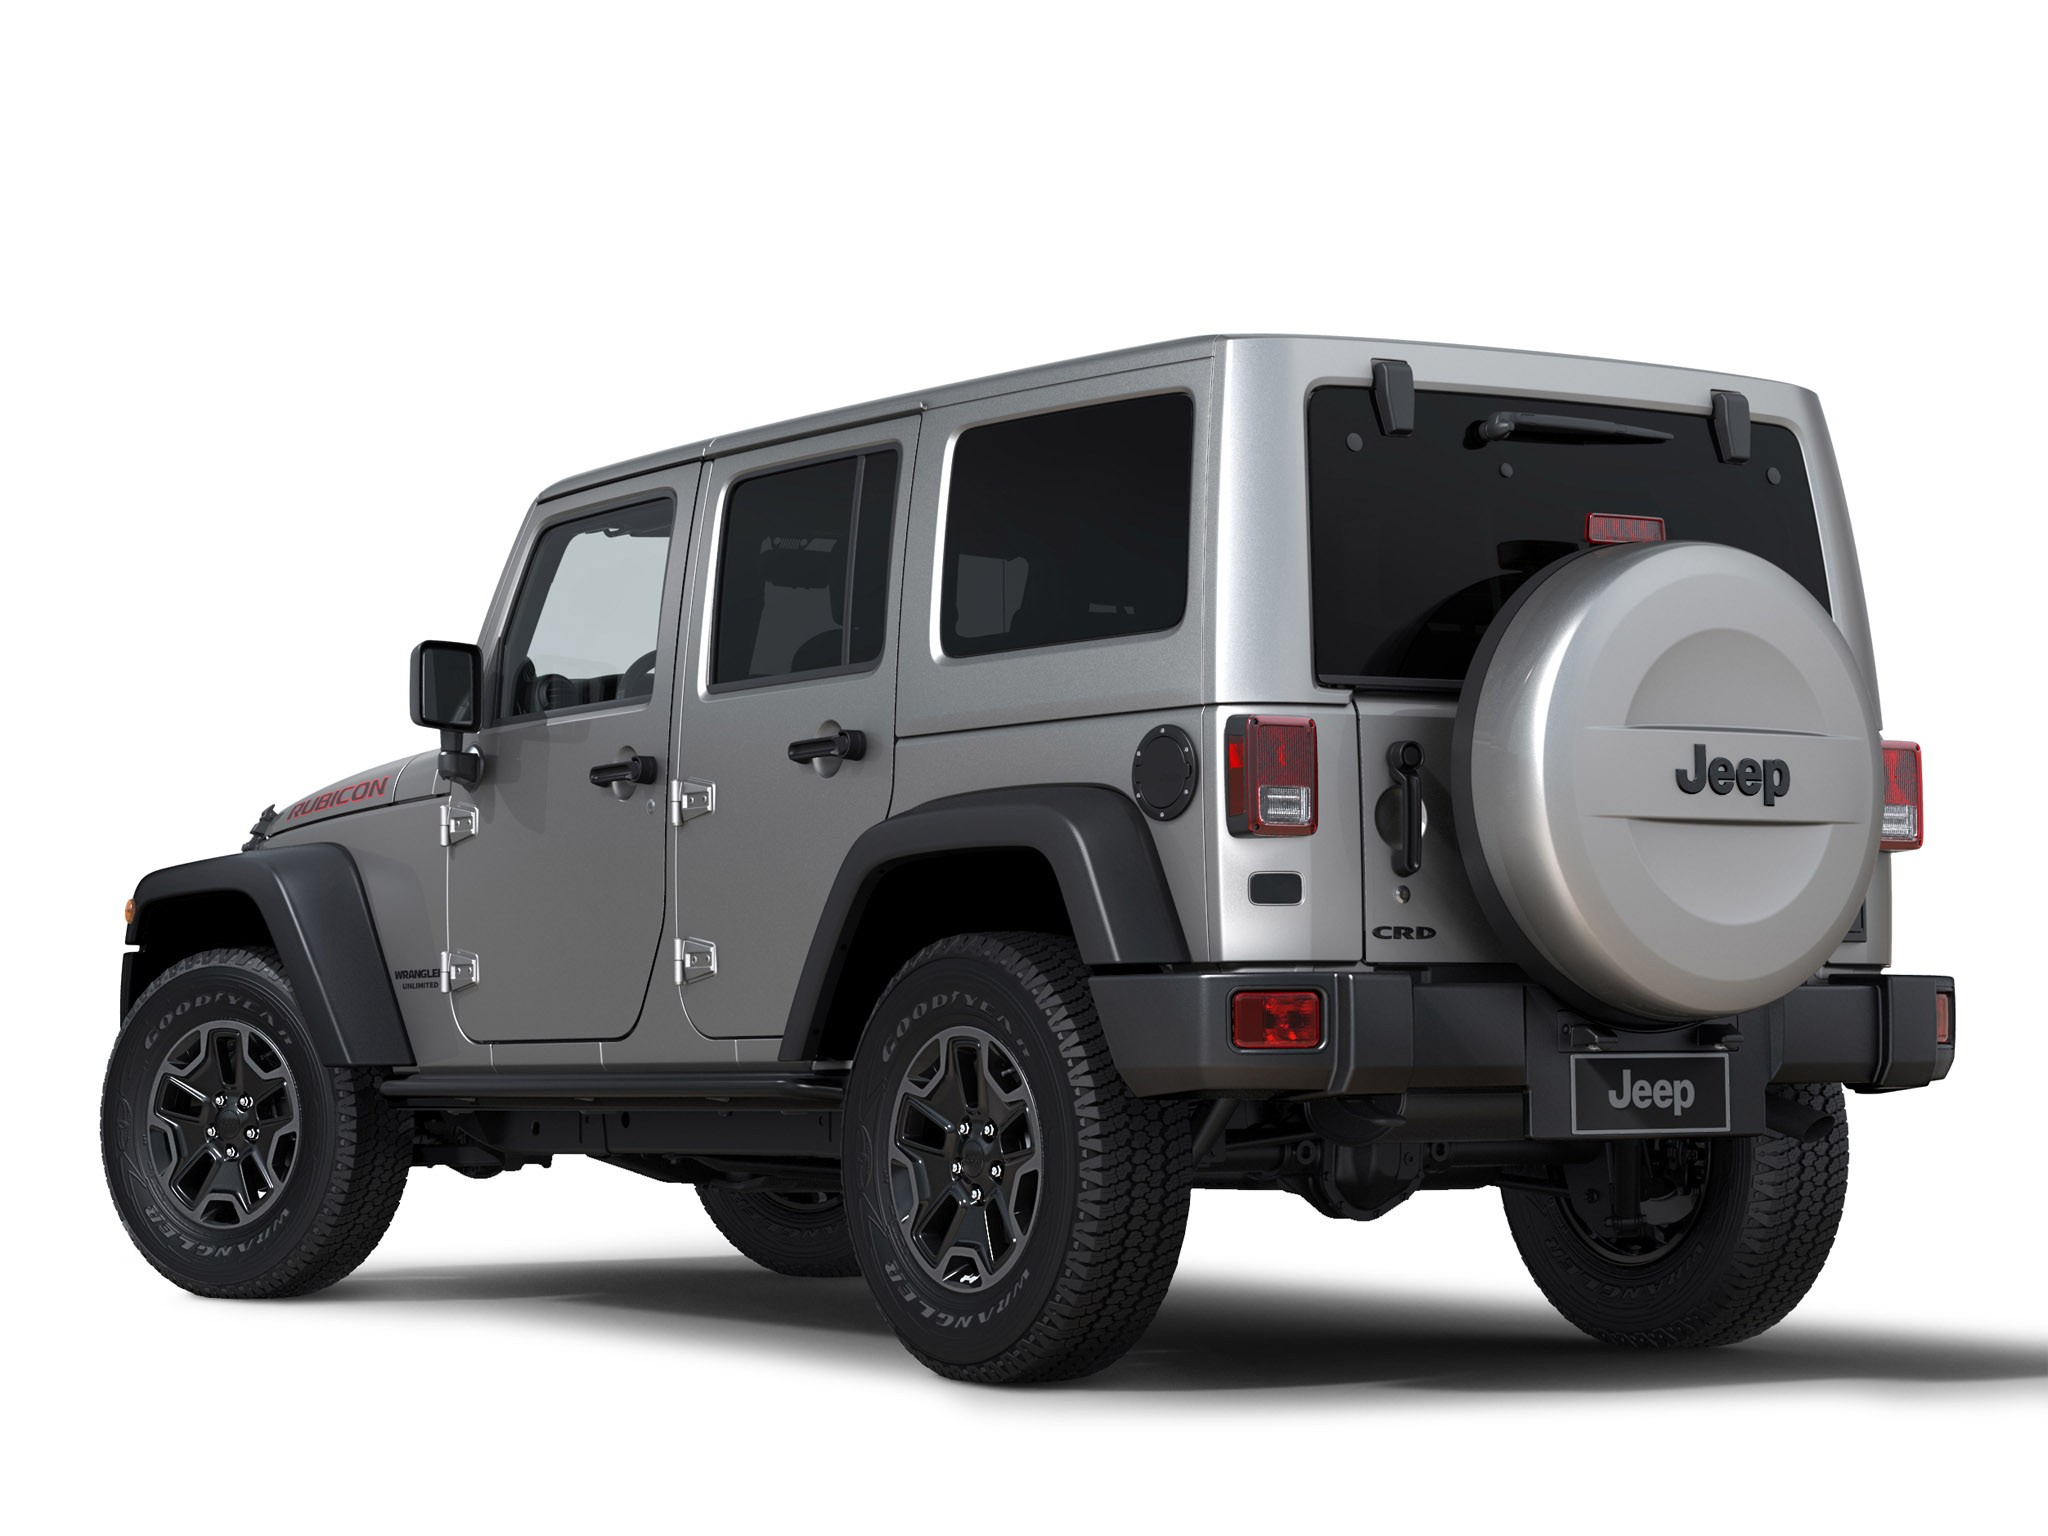 2014 Jeep Wrangler Unlimited Rubicon X Package